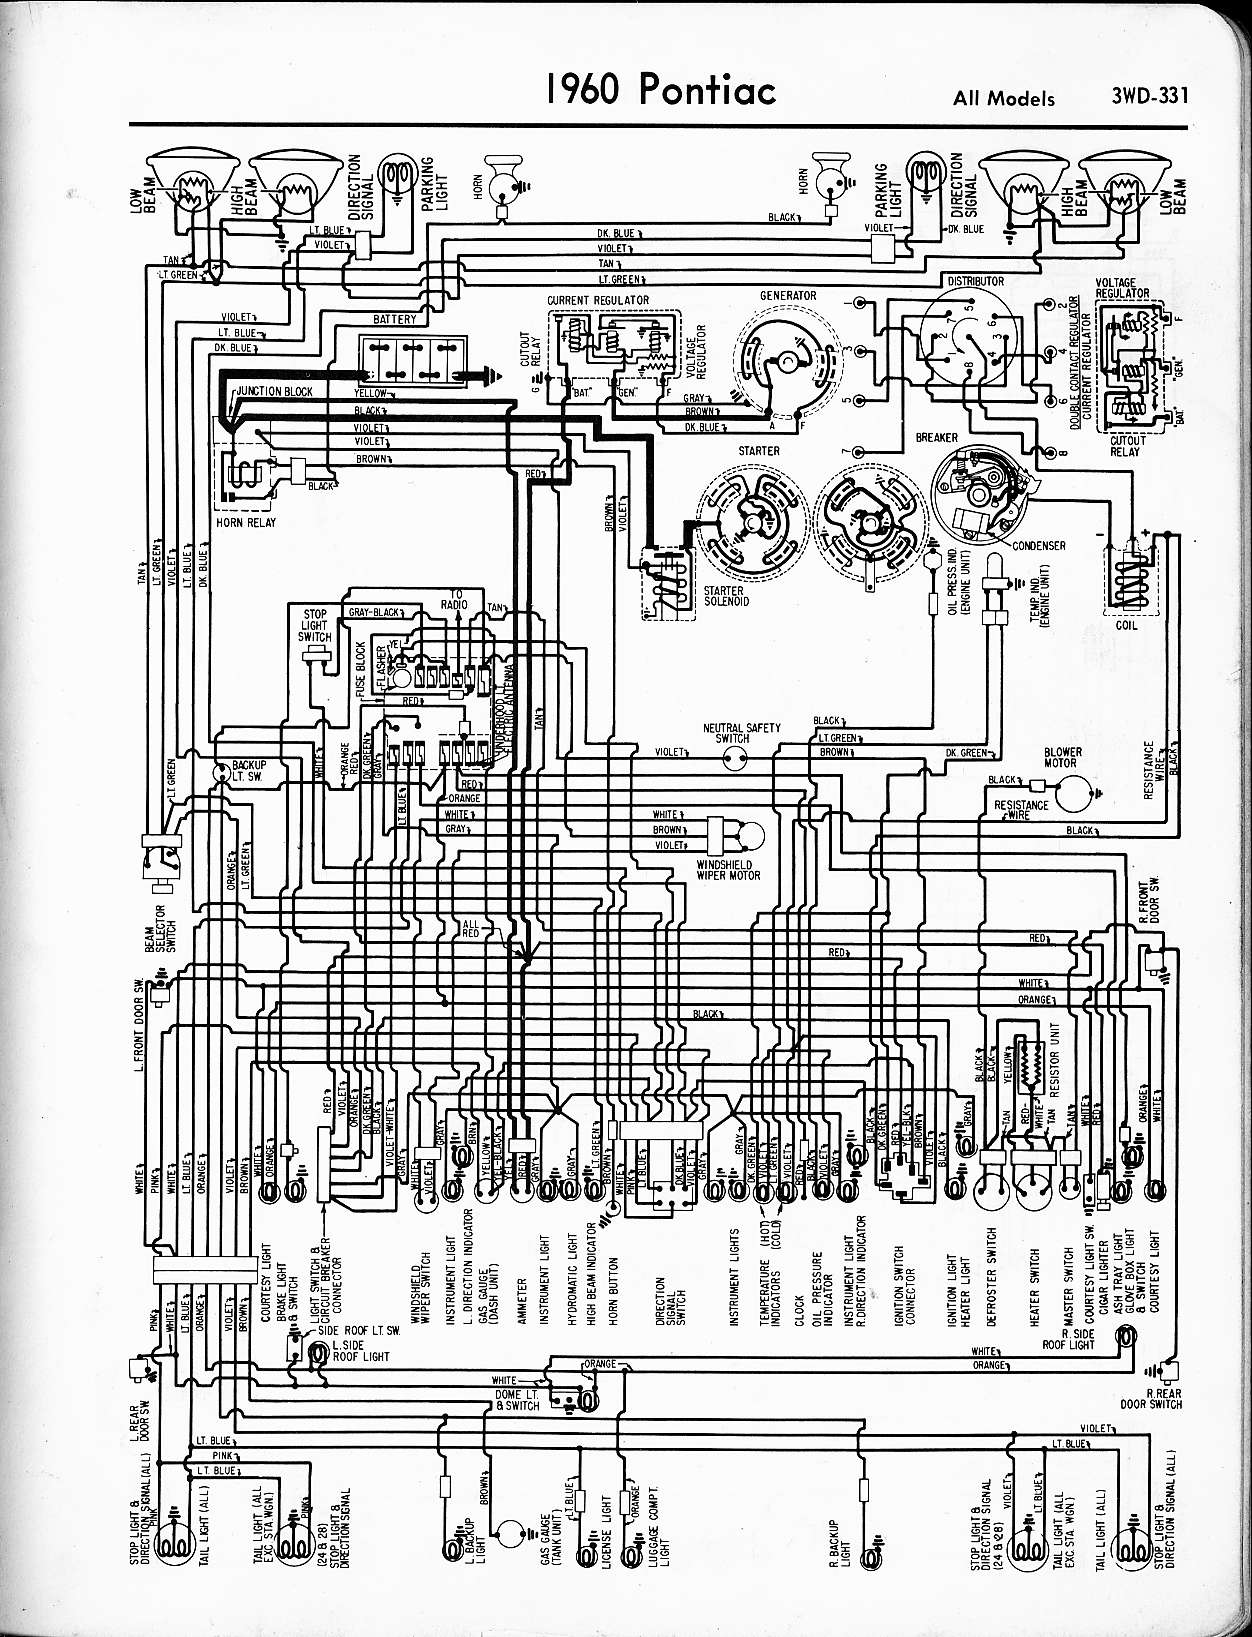 wallace racing wiring diagrams rh wallaceracing com pontiac g5 wiring schematic 2005 pontiac vibe wiring schematic